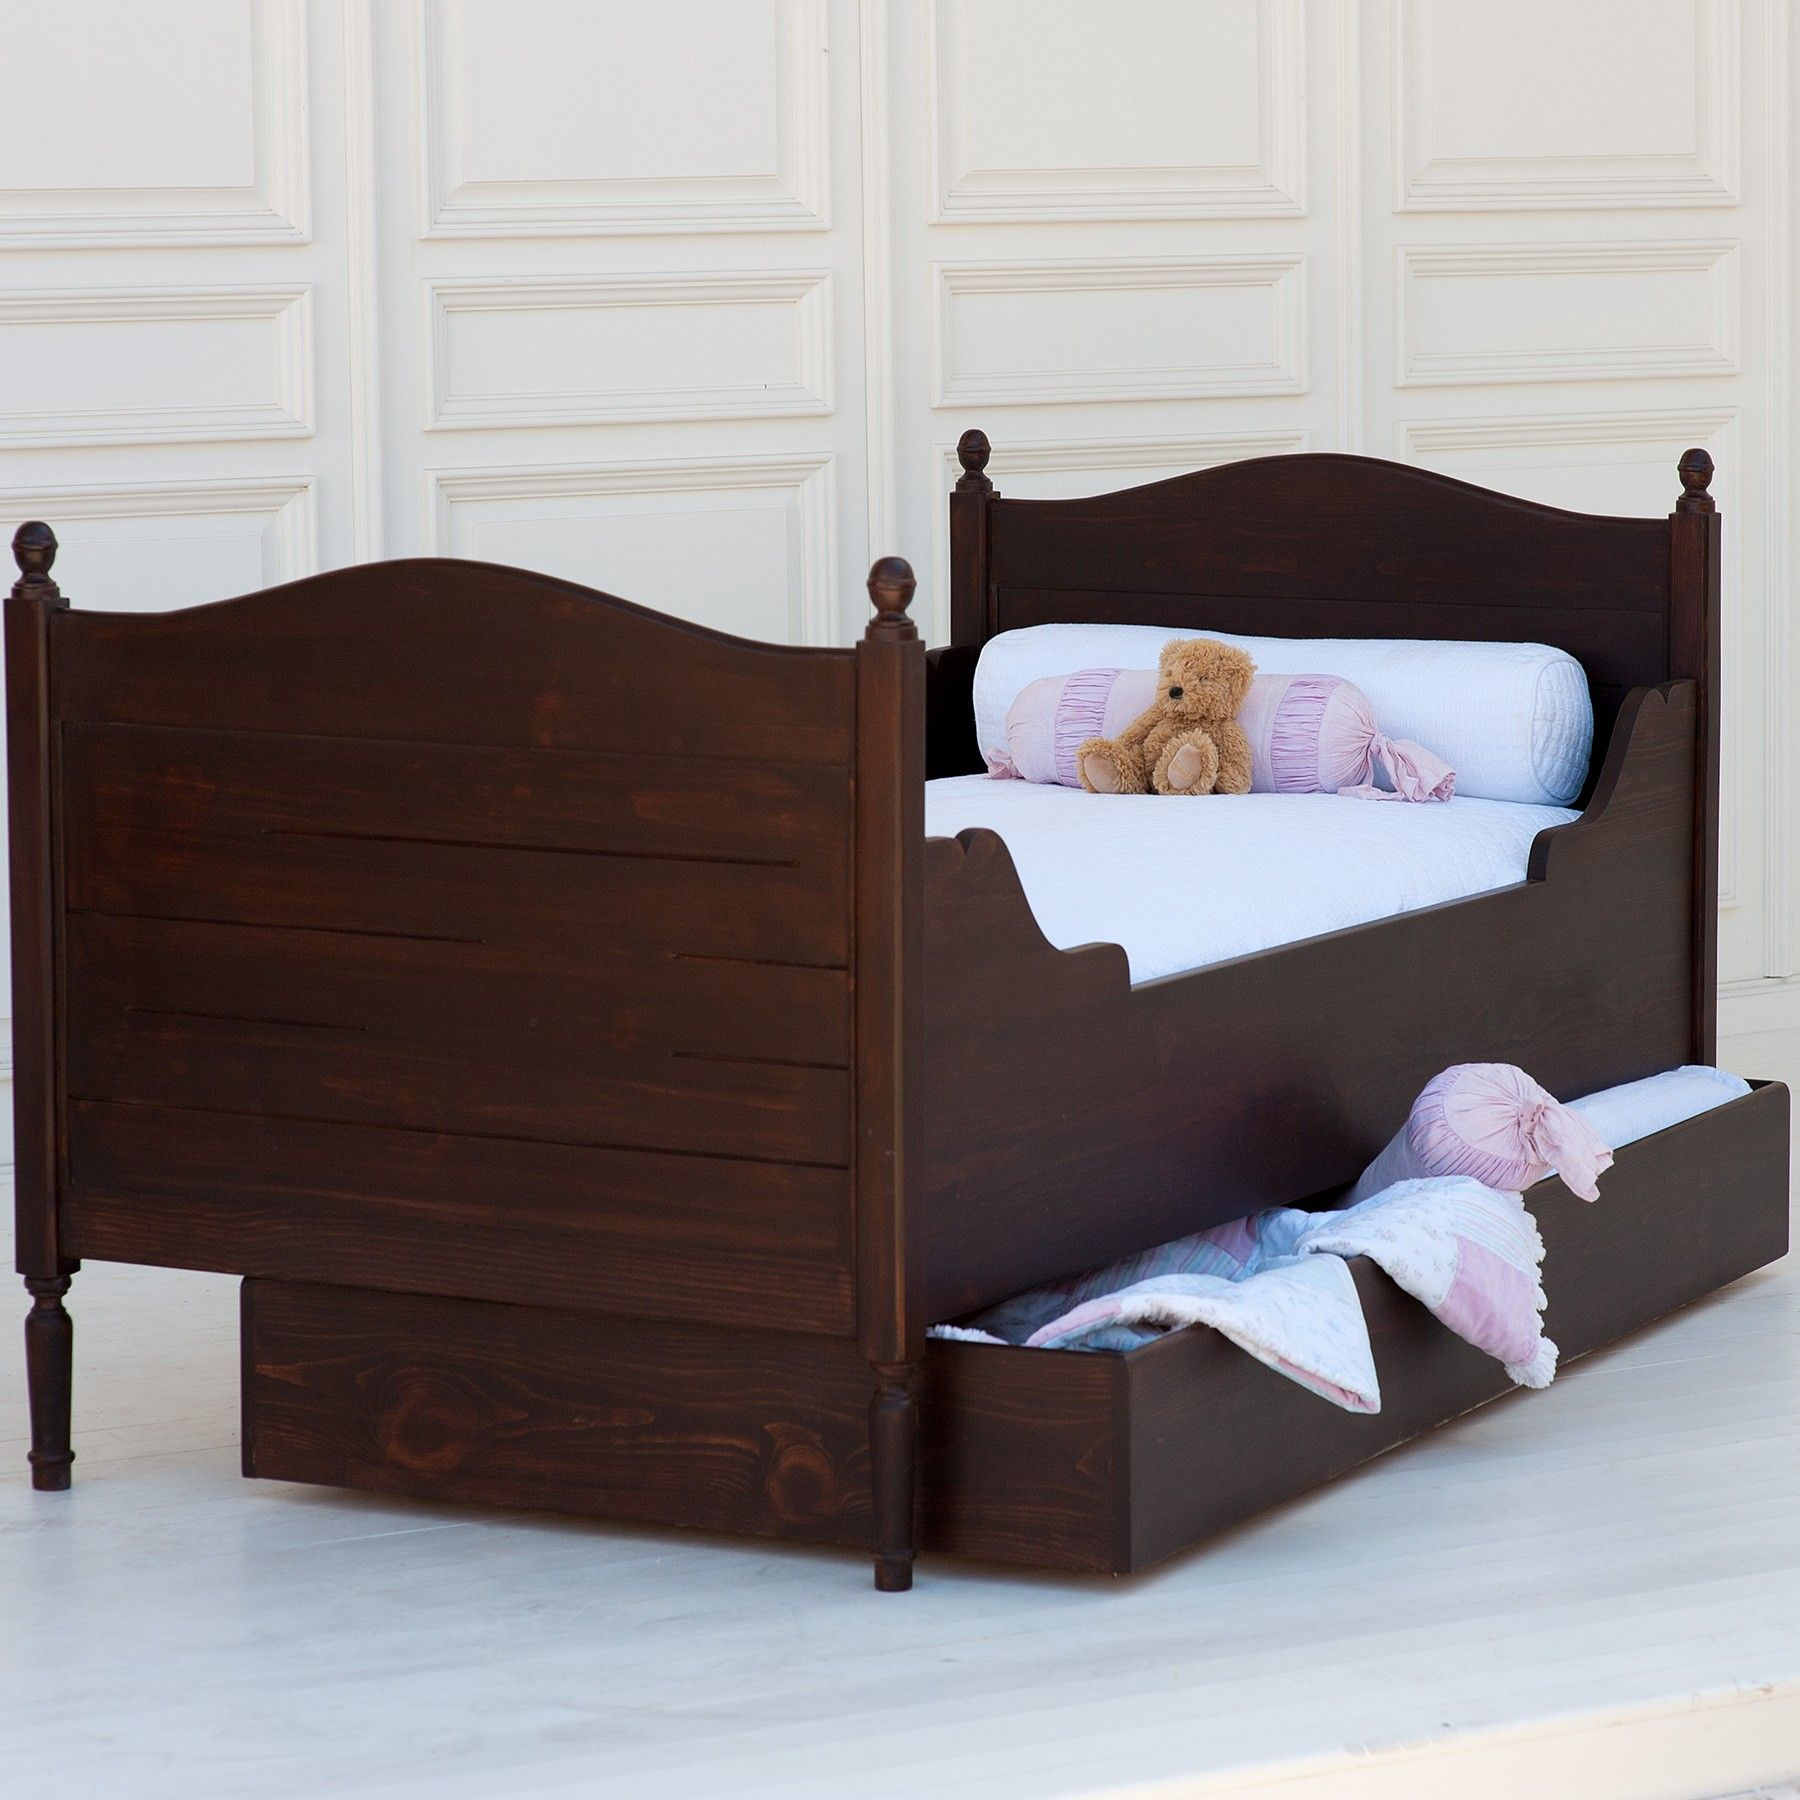 This Simple Trundle Bed Is Perfect For Helping Organize A